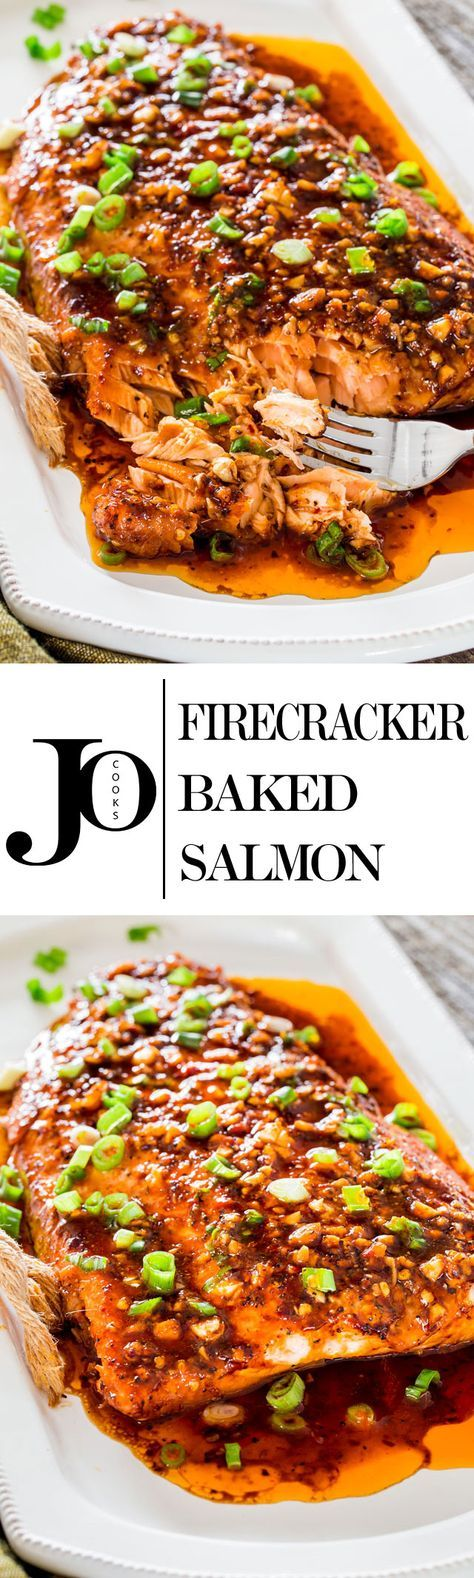 Perk up your dinner tonight with this firecracker baked salmon. Red pepper flakes and Sriracha sauce provide this salmon with some fiery flavor that give this salmon its name. (Bake Shrimp Sauce)